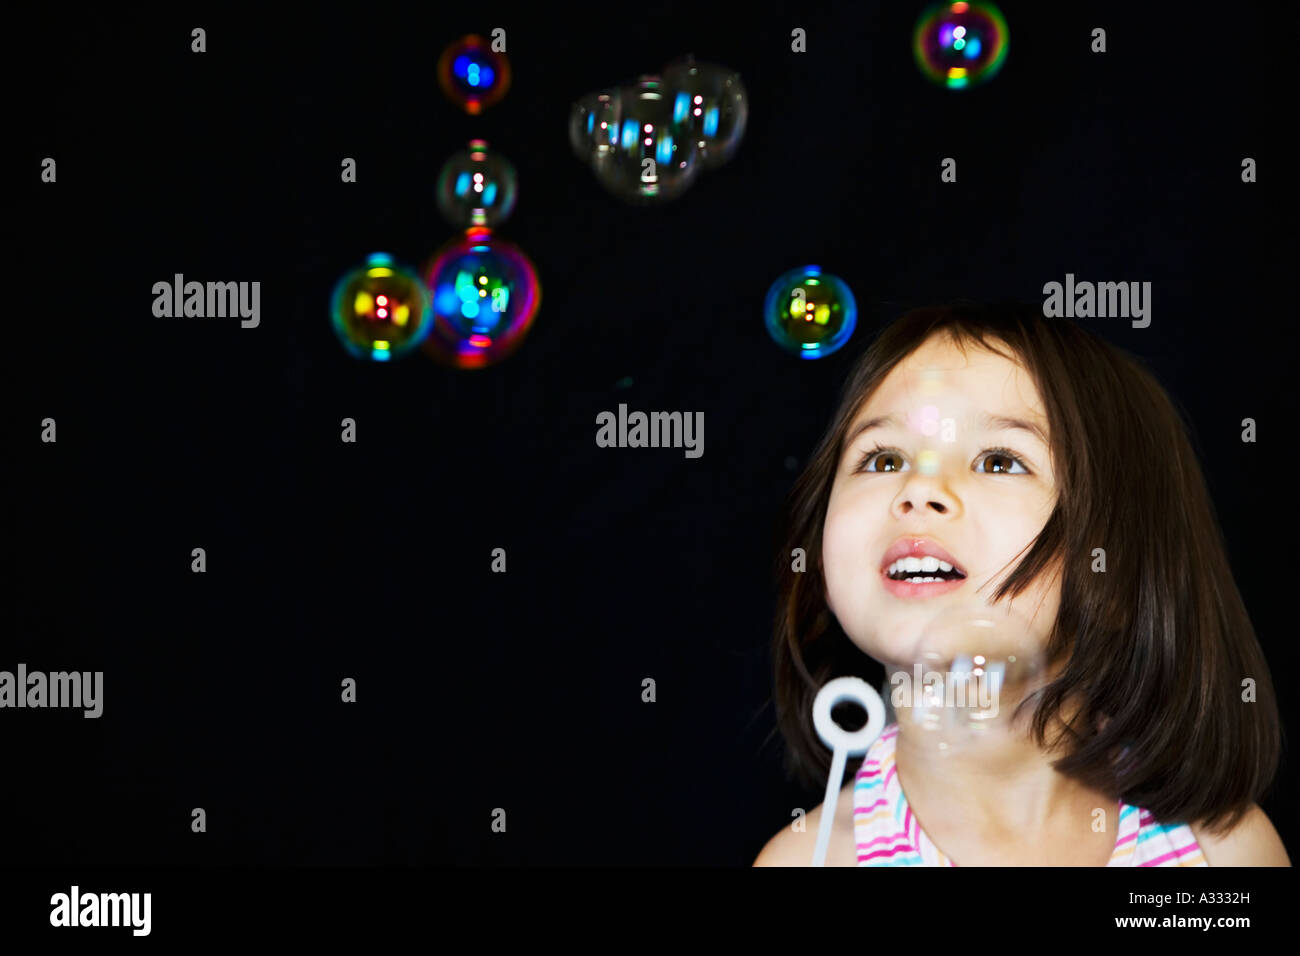 Blowing bubbles - Stock Image